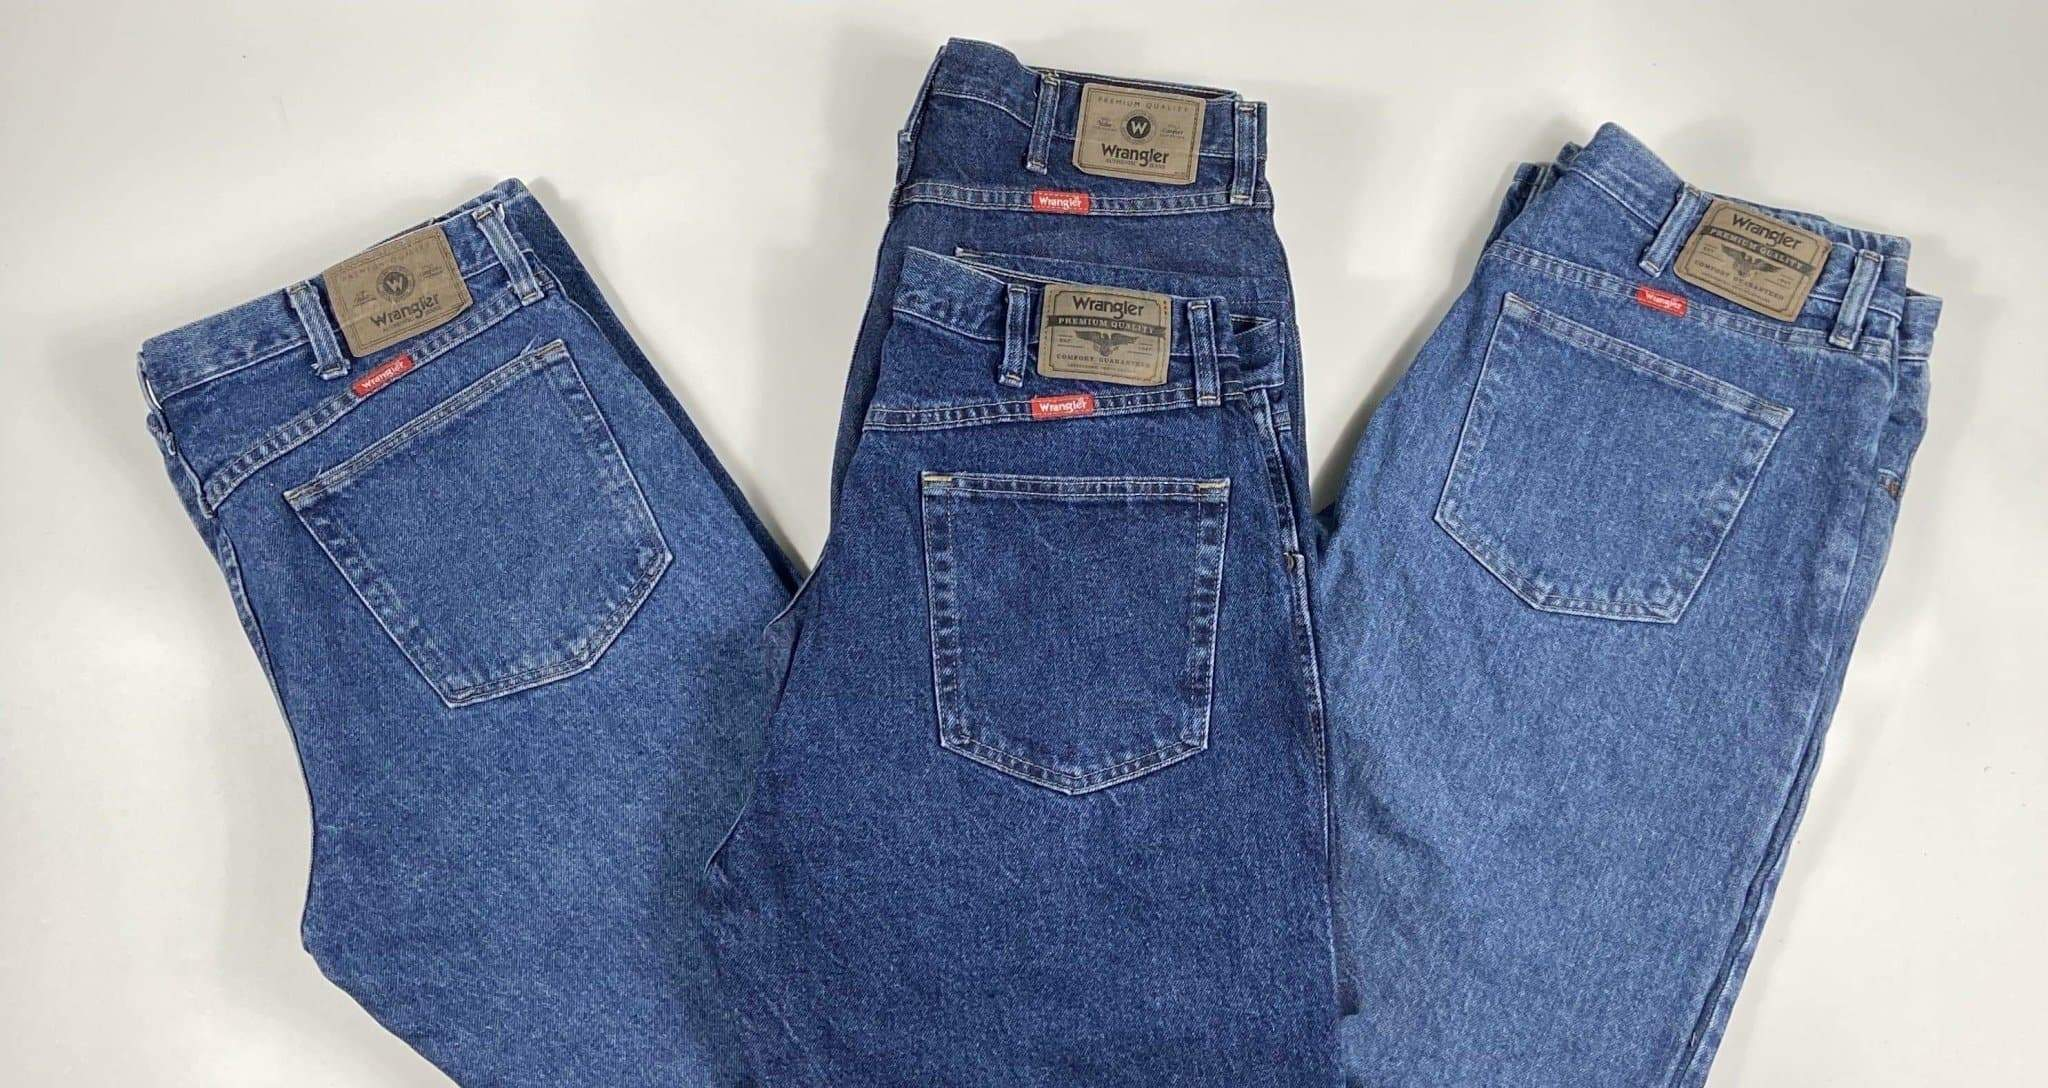 Vintage Original Wrangler Classic Blue Denim Jeans Waist 32 Length 36 - Discounted Deals UK